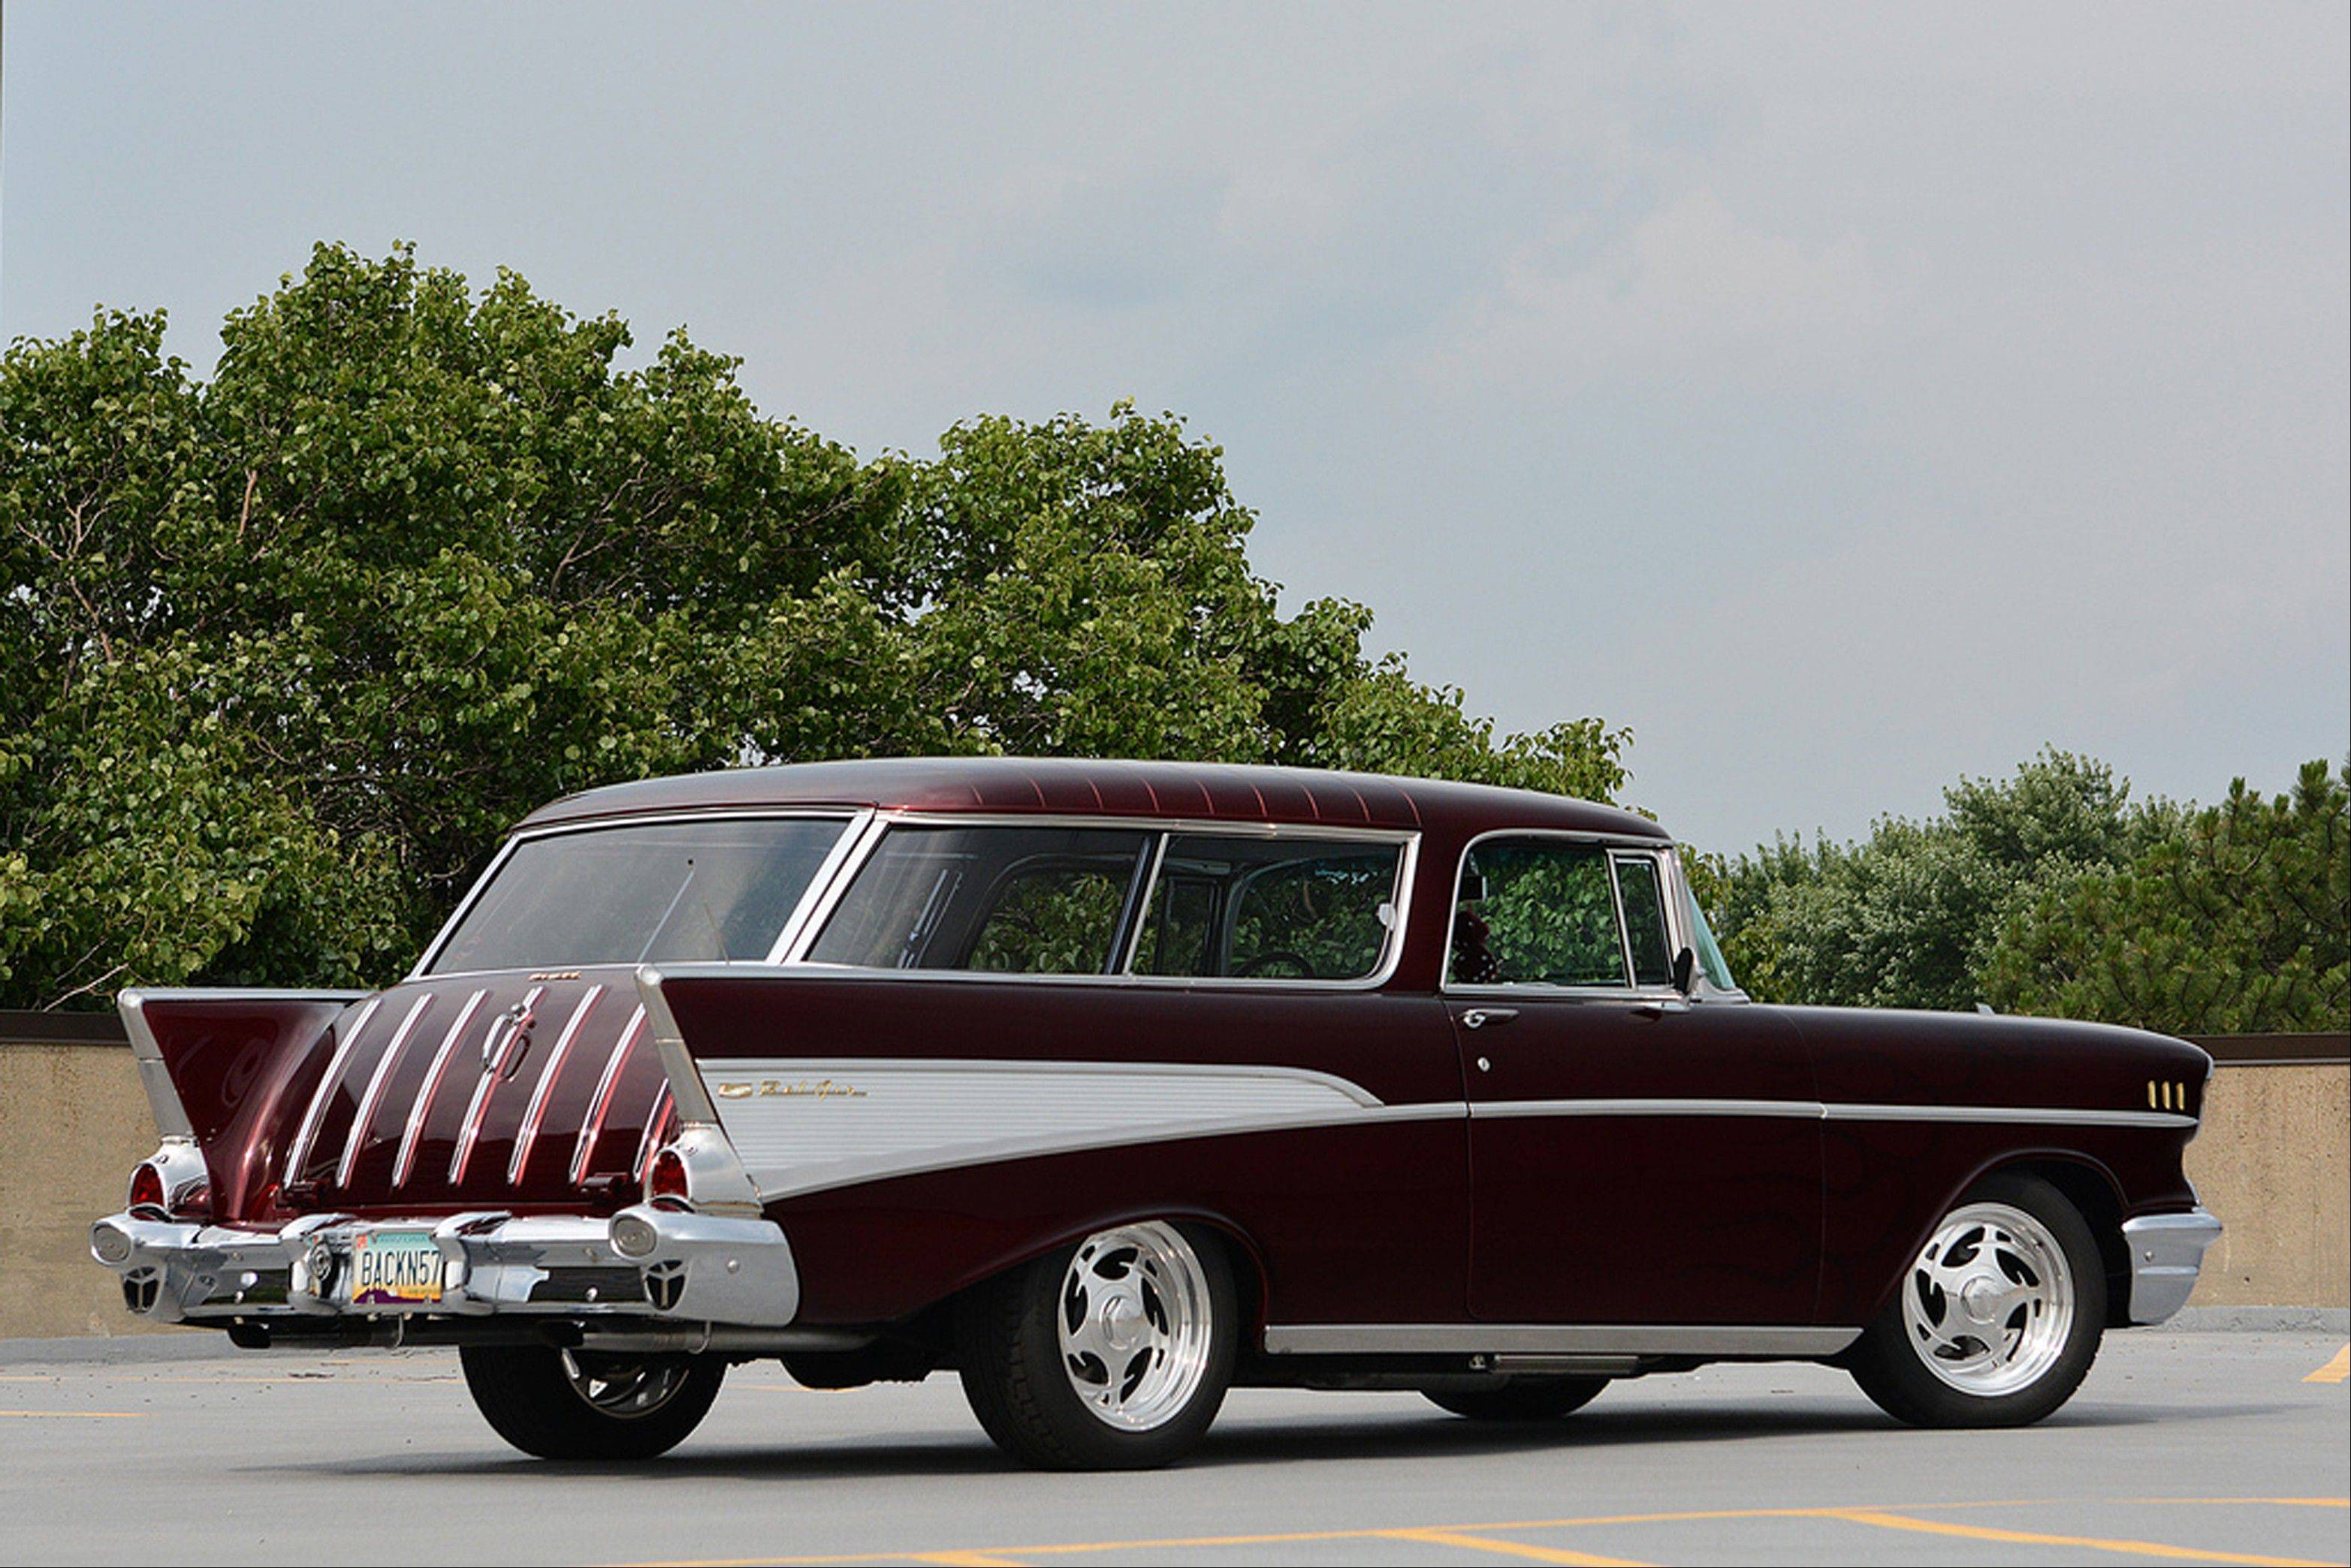 The Chevrolet Nomad had just three years in production, from 1955 to 1957, but has enjoyed a half century of nostalgia.